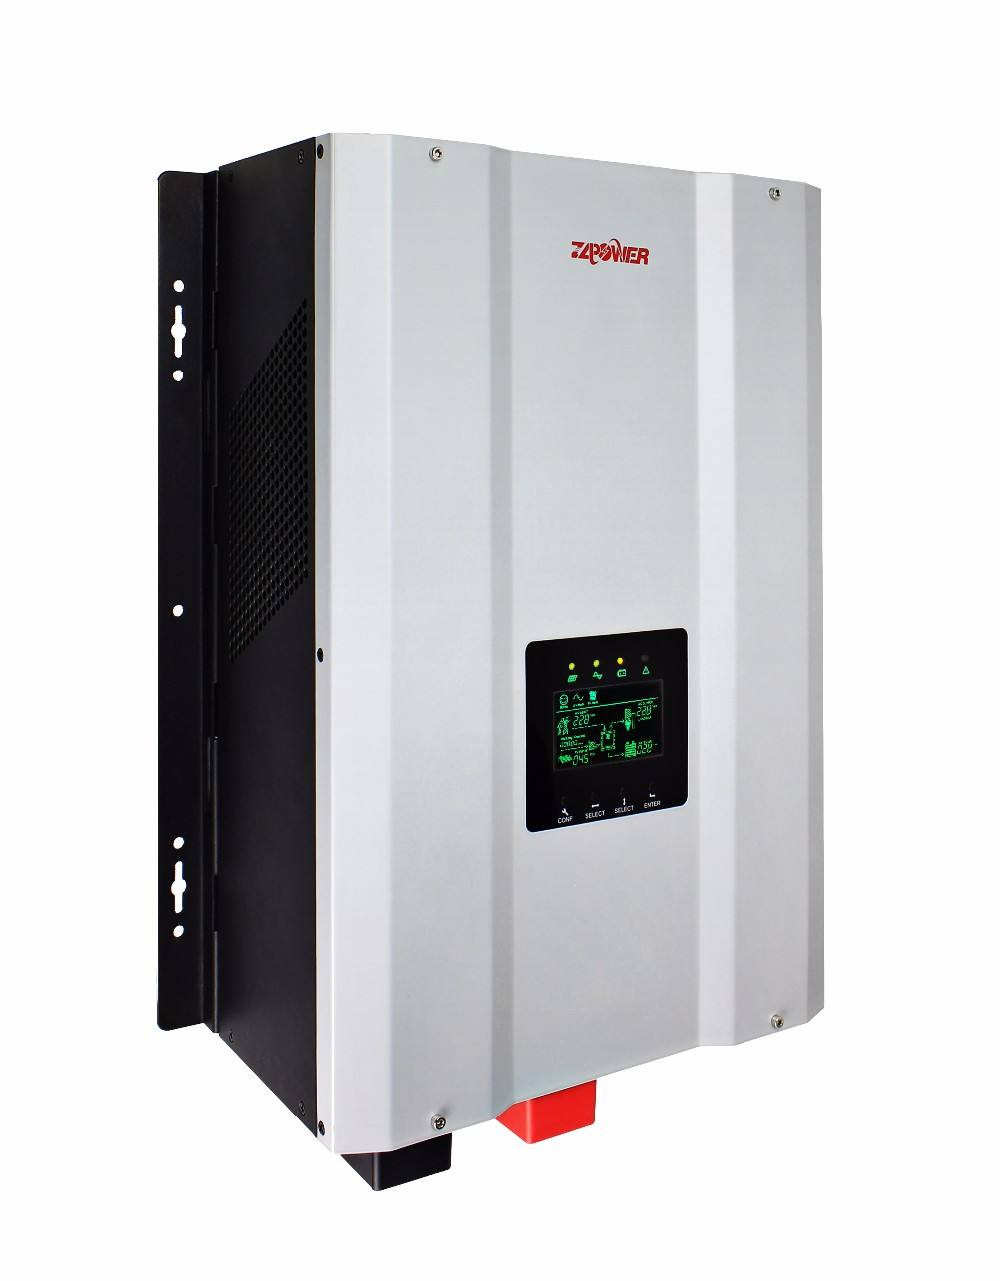 <span class=keywords><strong>1kw</strong></span> 2kw 3kw 4kw 5kw 6kw 8kw 12kw Pannello Solare 10kw Ups <span class=keywords><strong>Inverter</strong></span> 12 <span class=keywords><strong>V</strong></span> 24 <span class=keywords><strong>V</strong></span> <span class=keywords><strong>48</strong></span> <span class=keywords><strong>V</strong></span> 220 <span class=keywords><strong>V</strong></span> 230 <span class=keywords><strong>V</strong></span>